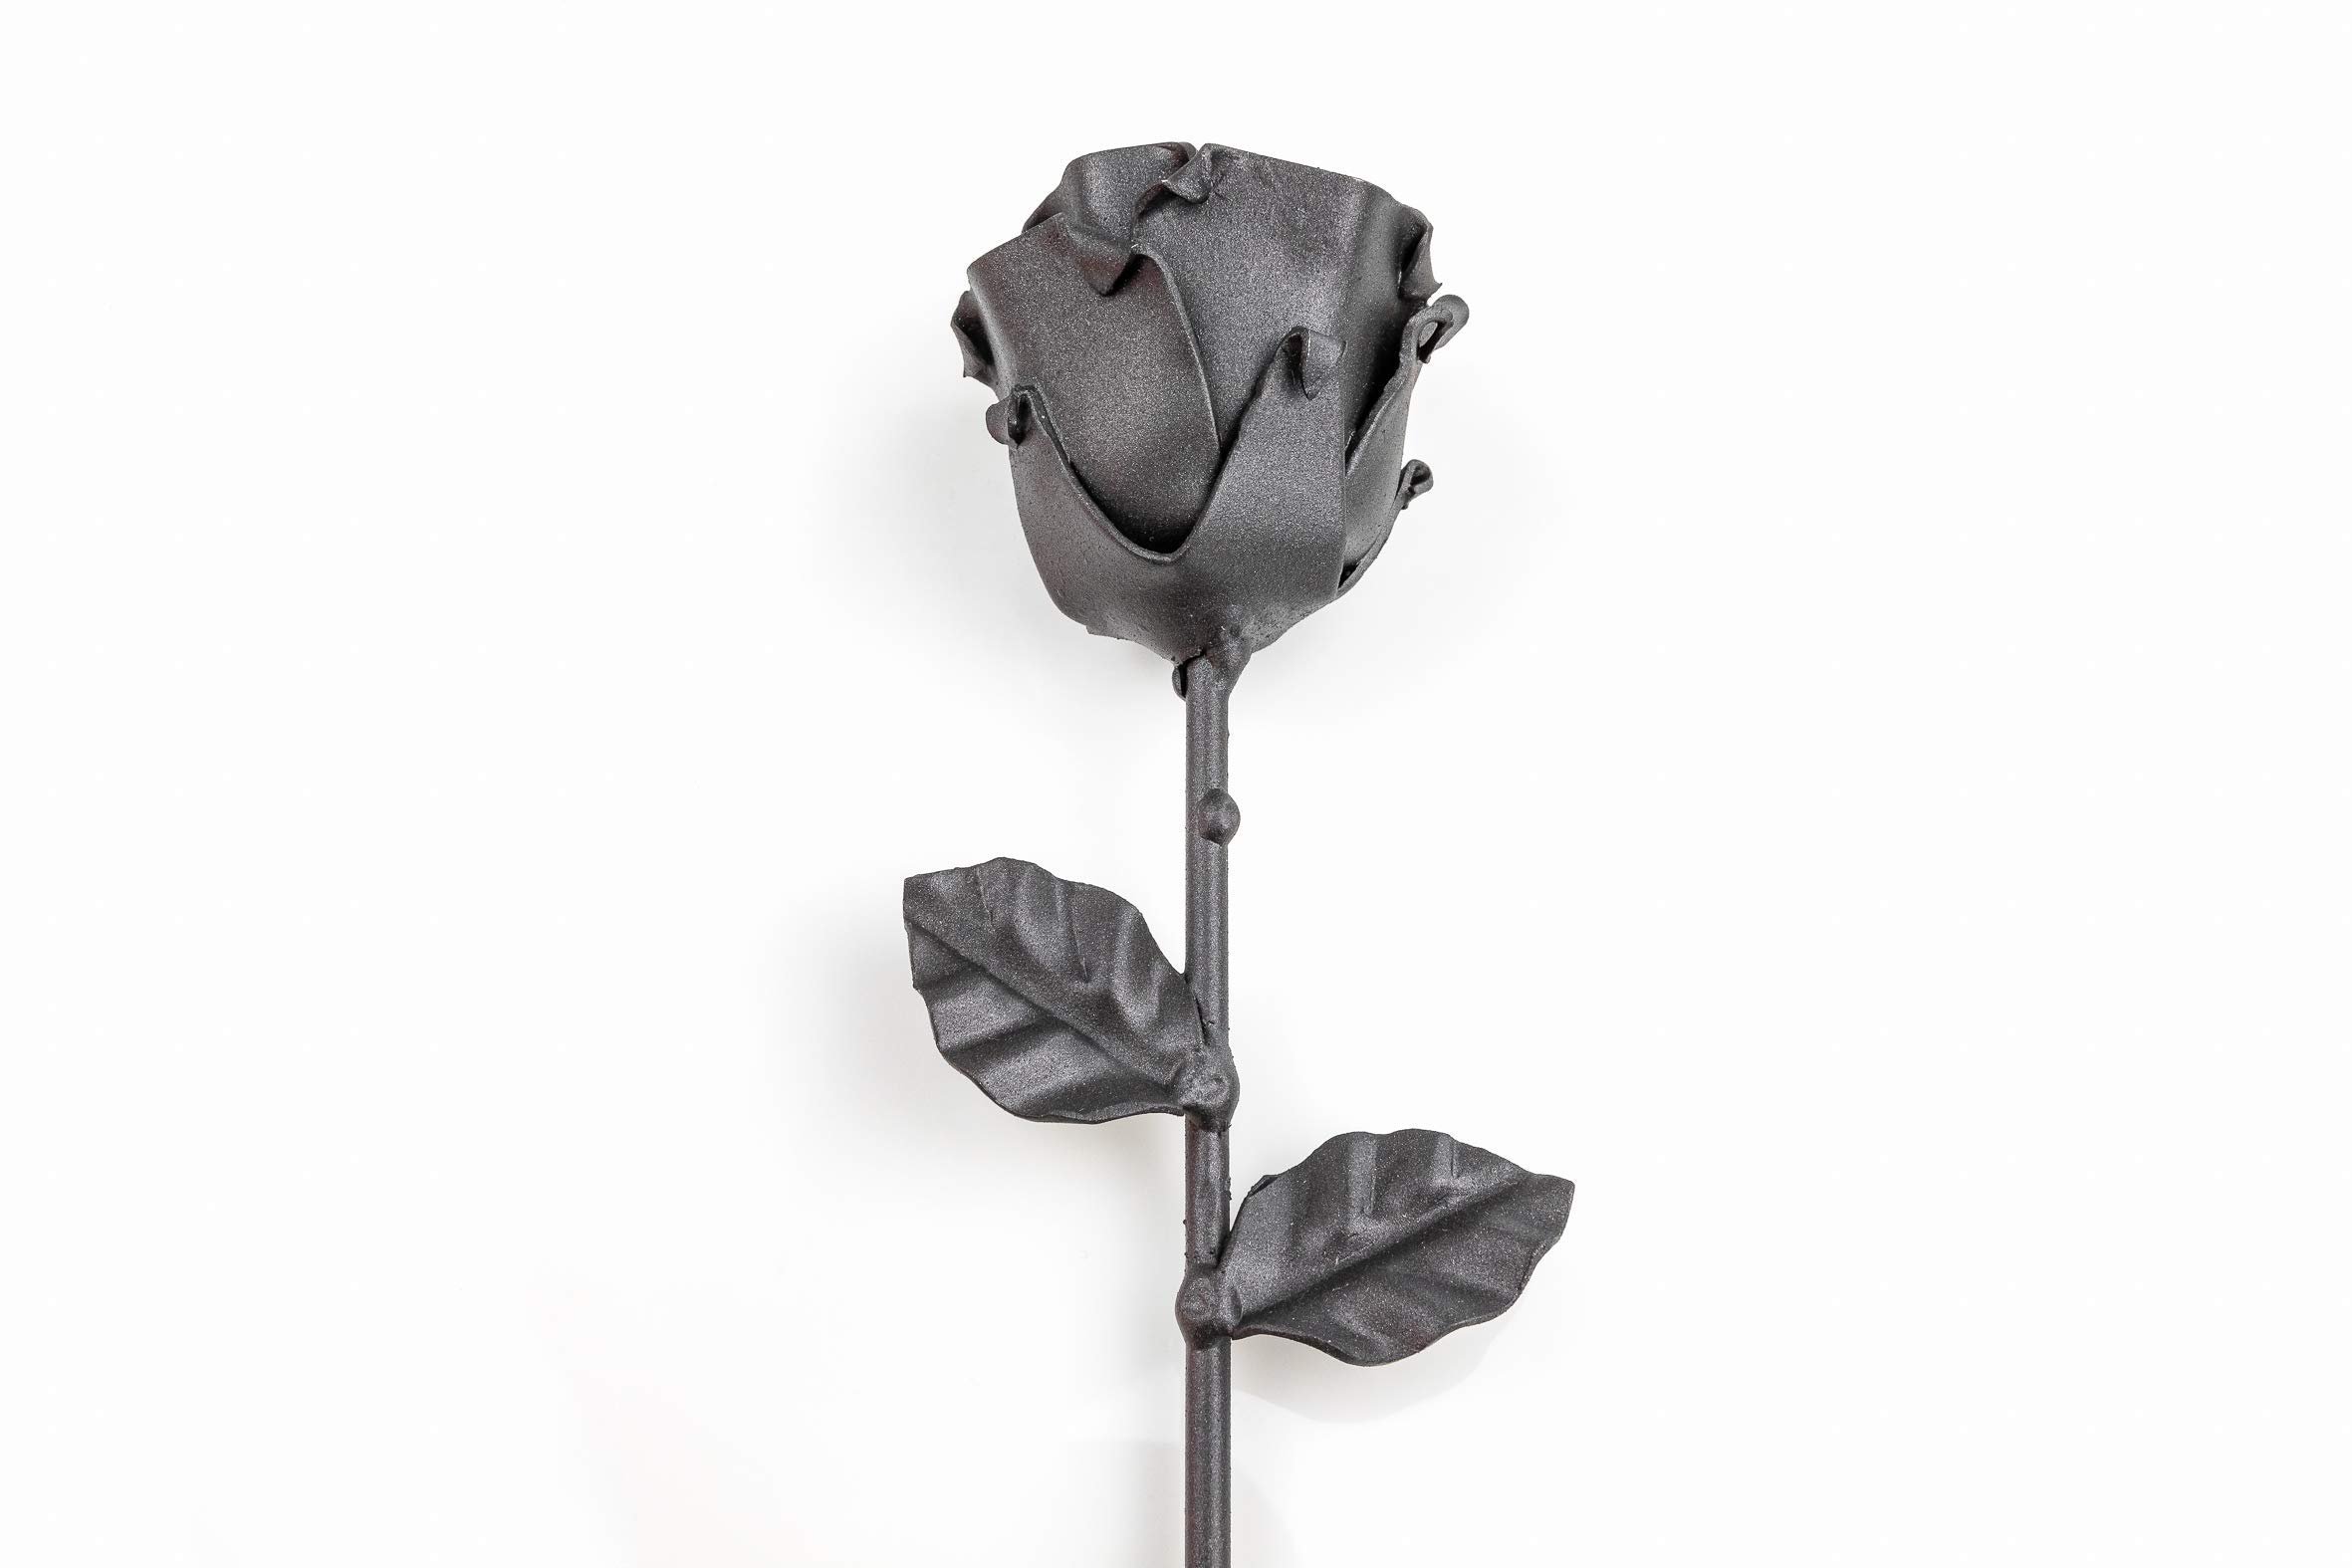 -Eternal-Rose-Hand-Forged-Wrought-Iron-BlackIdeal-gift-for-Valentines-Day-Mothers-Day-Couple-Birthday-Christmas-Wedding-Day-Anniversary-Decor-IndoorOutdoor